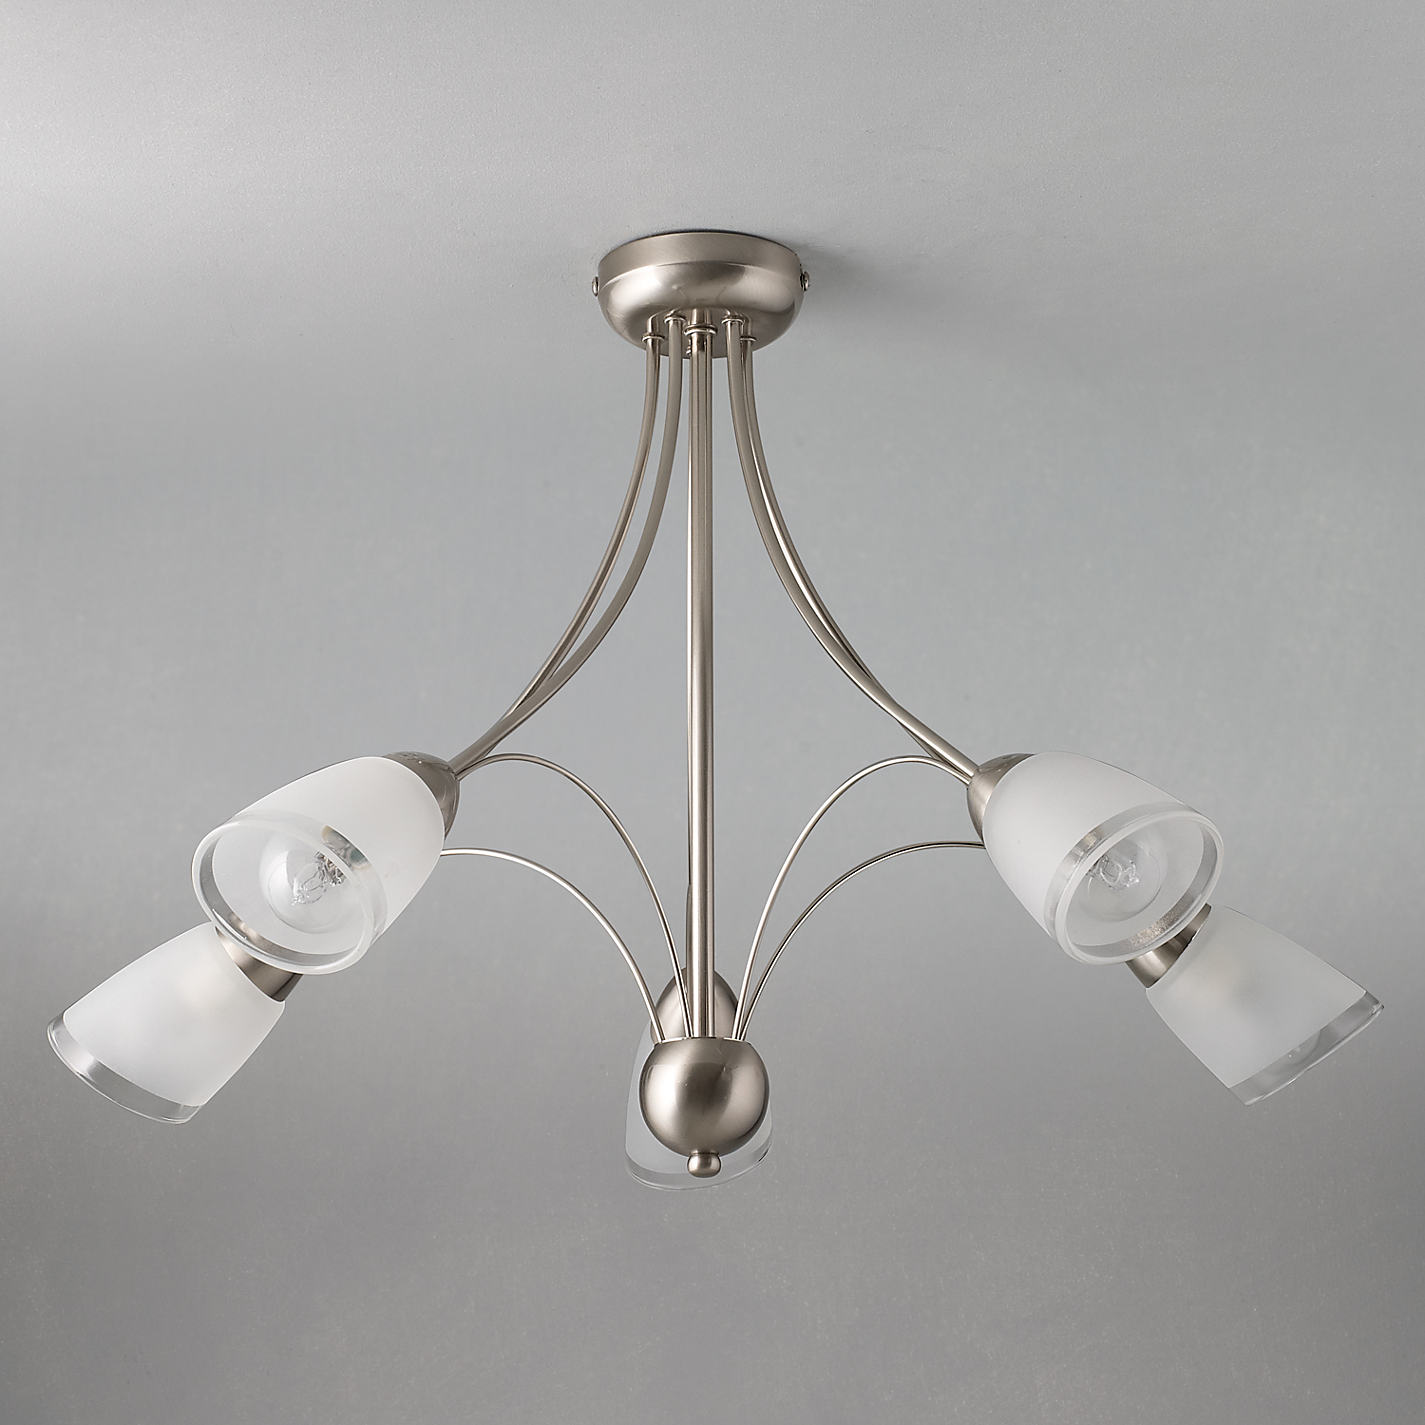 Buy john lewis mizar ceiling light 5 arm john lewis buy john lewis mizar ceiling light 5 arm online at johnlewis aloadofball Choice Image